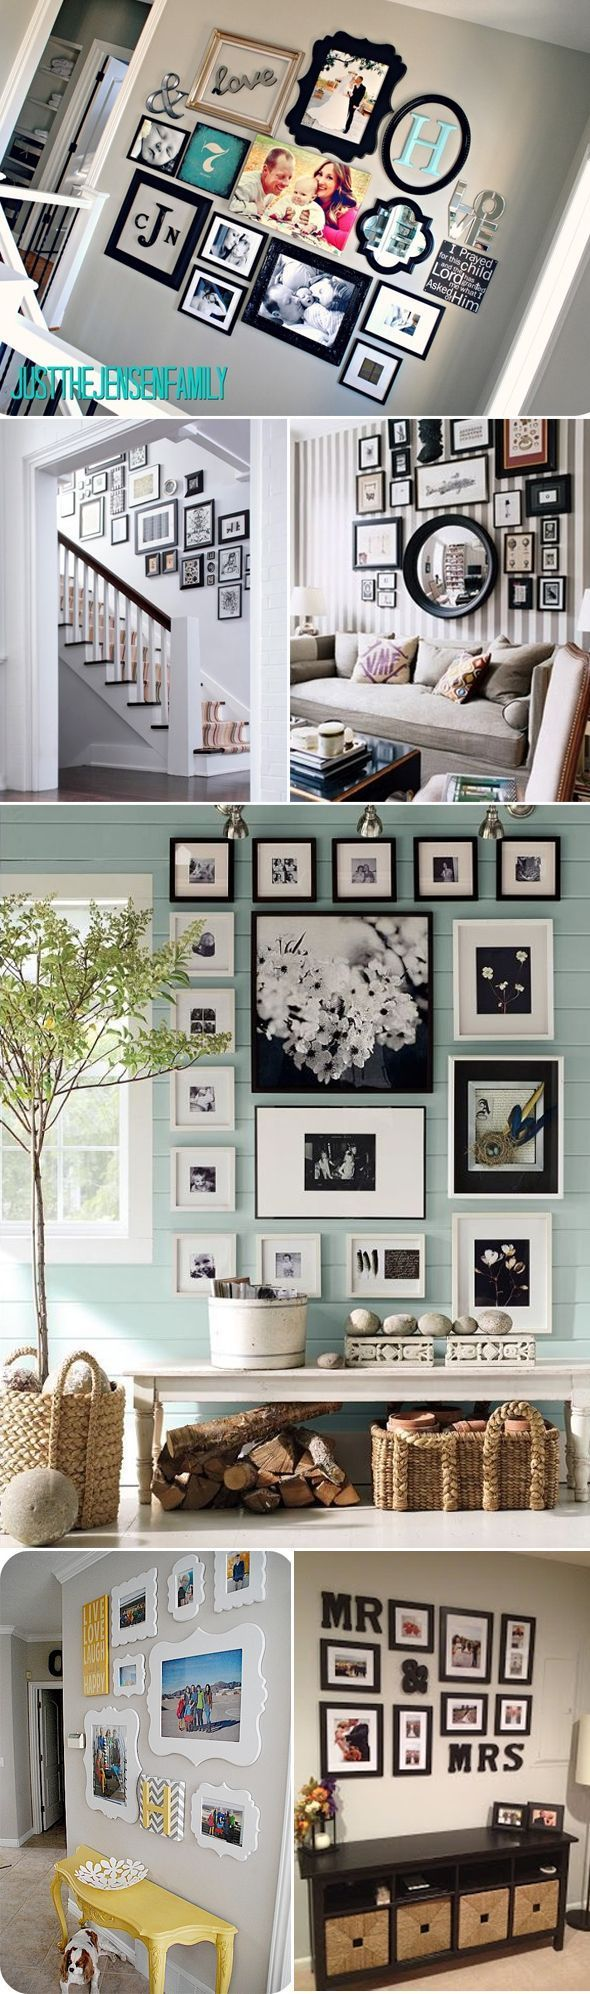 I love the idea of a family picture wall.. Not sure where this would work in our house though.. Maybe over the stairs or down the hallway..